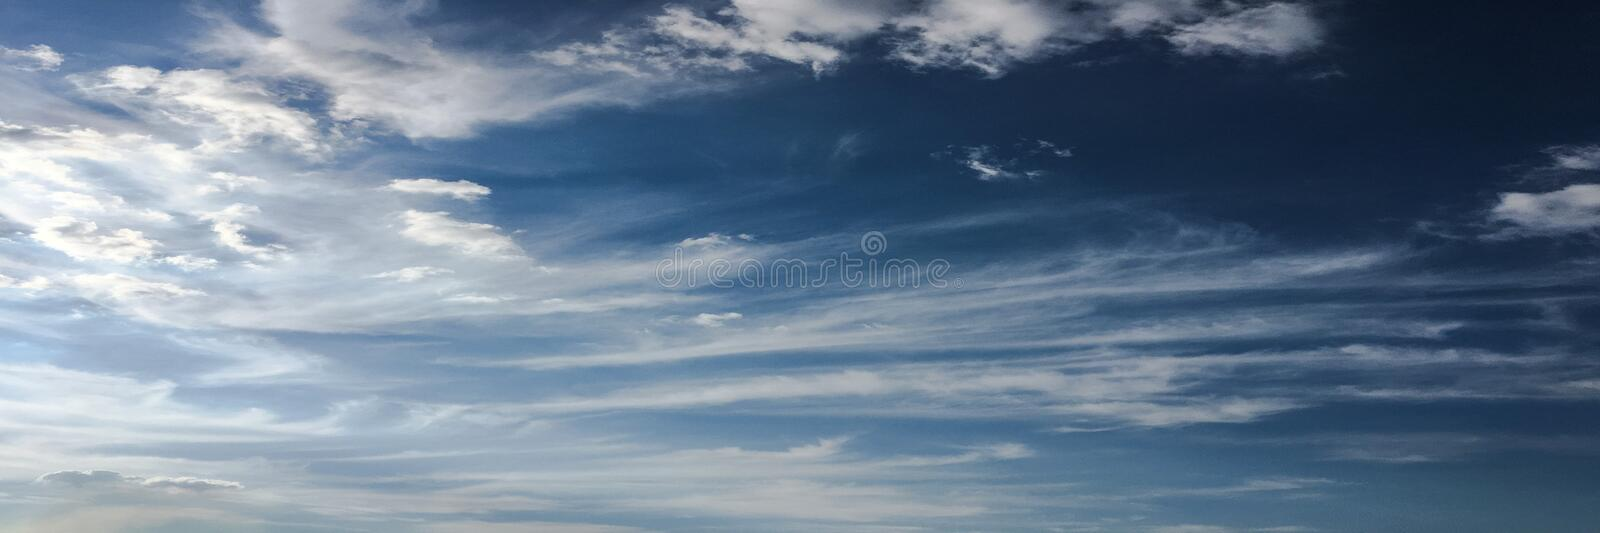 Clouds on blue sky background. Weather nature blue sky with white cloud and sun. royalty free stock image